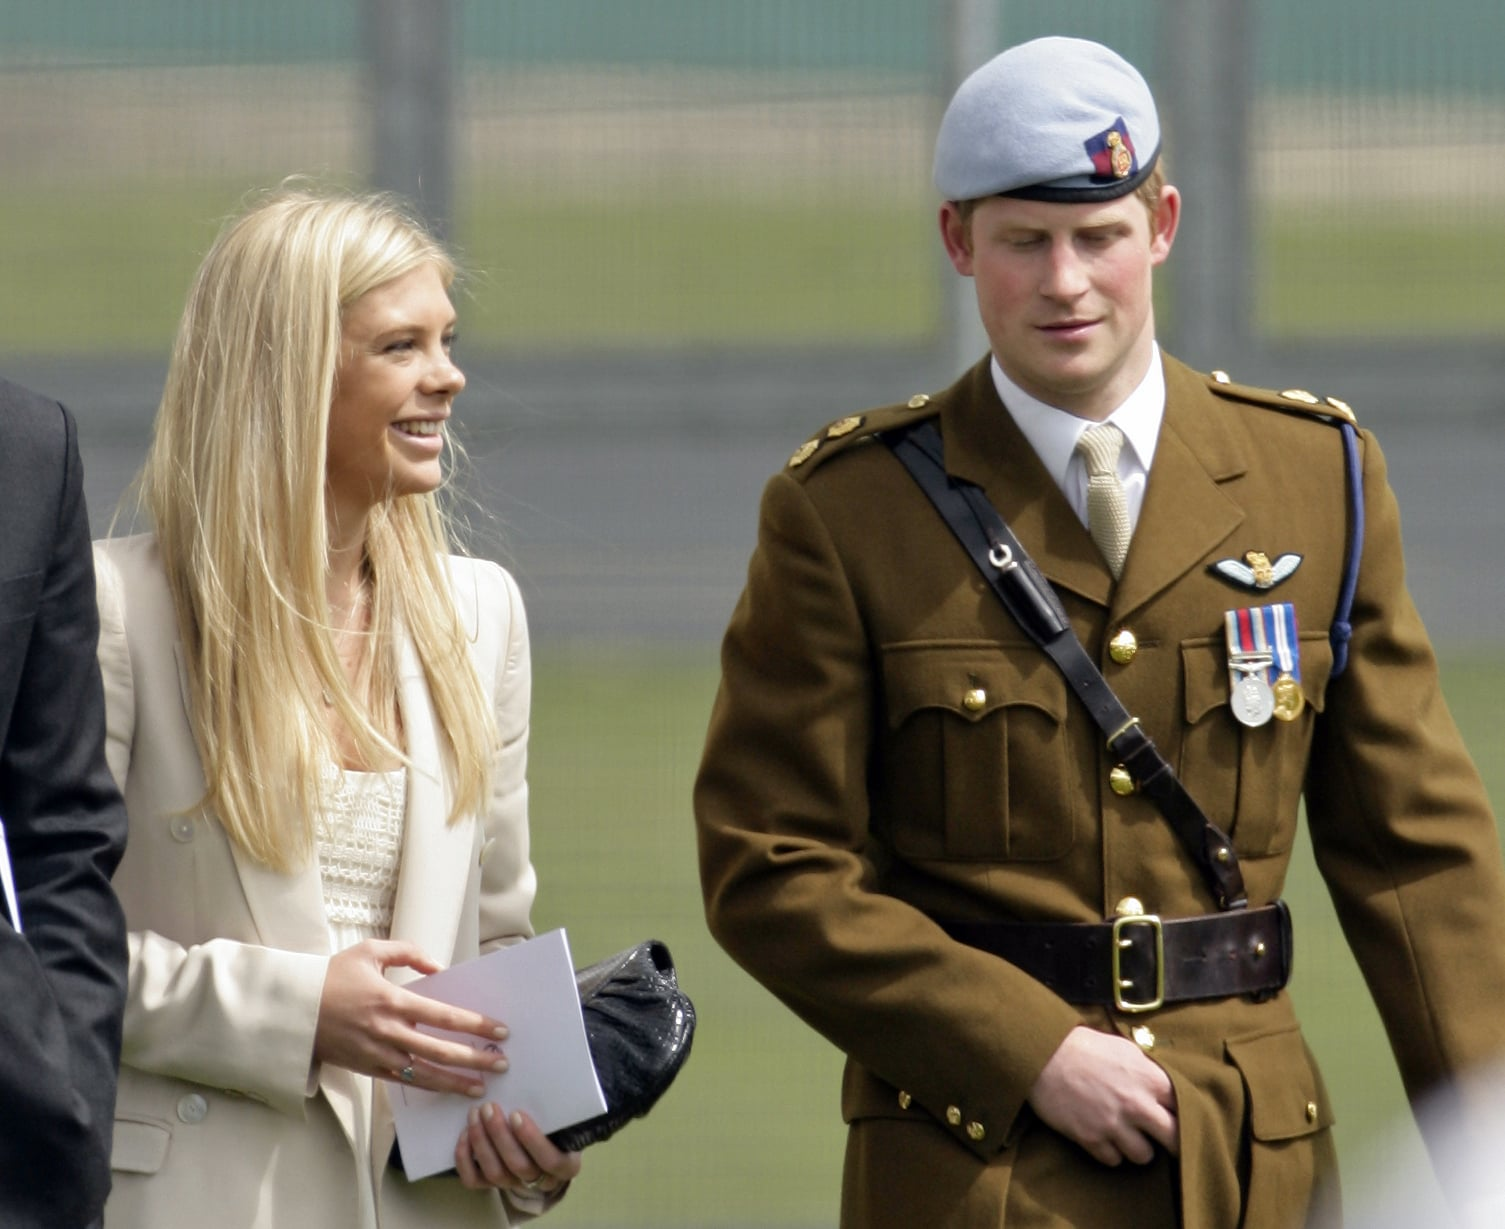 Prince Harry Ex Girlfriend Wedding.Prince Harry Called Ex Girlfriend Chelsy Davy Before Wedding